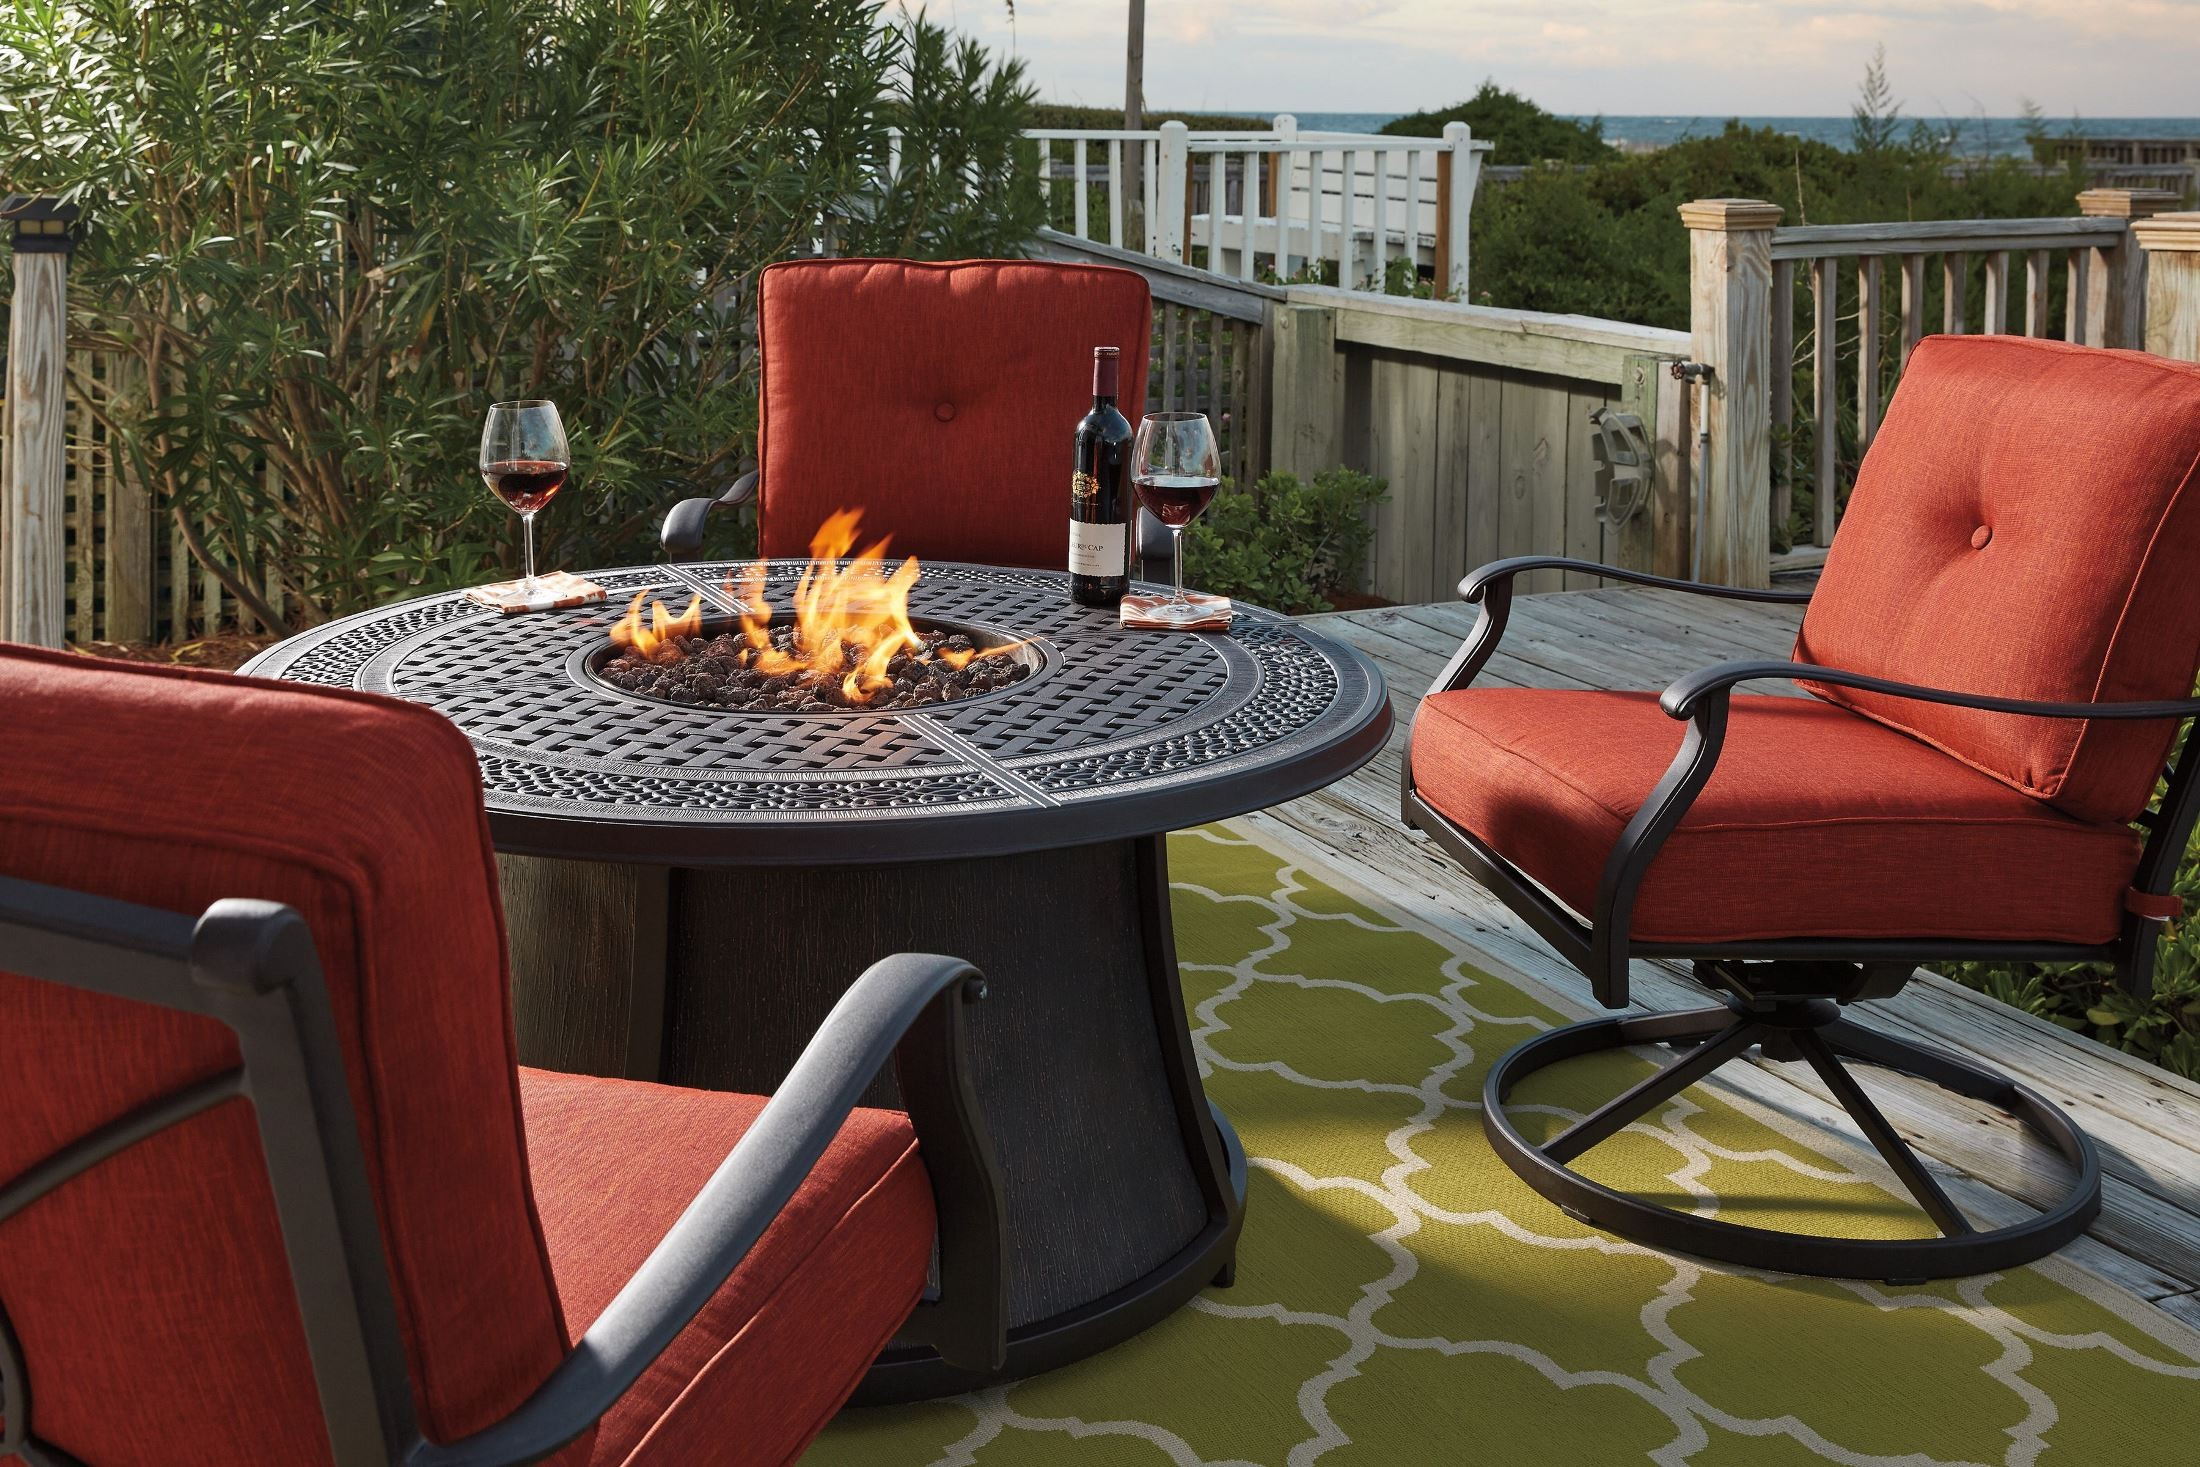 Burnella Round Fire Pit Outdoor Dining Set, P456-776T-776B